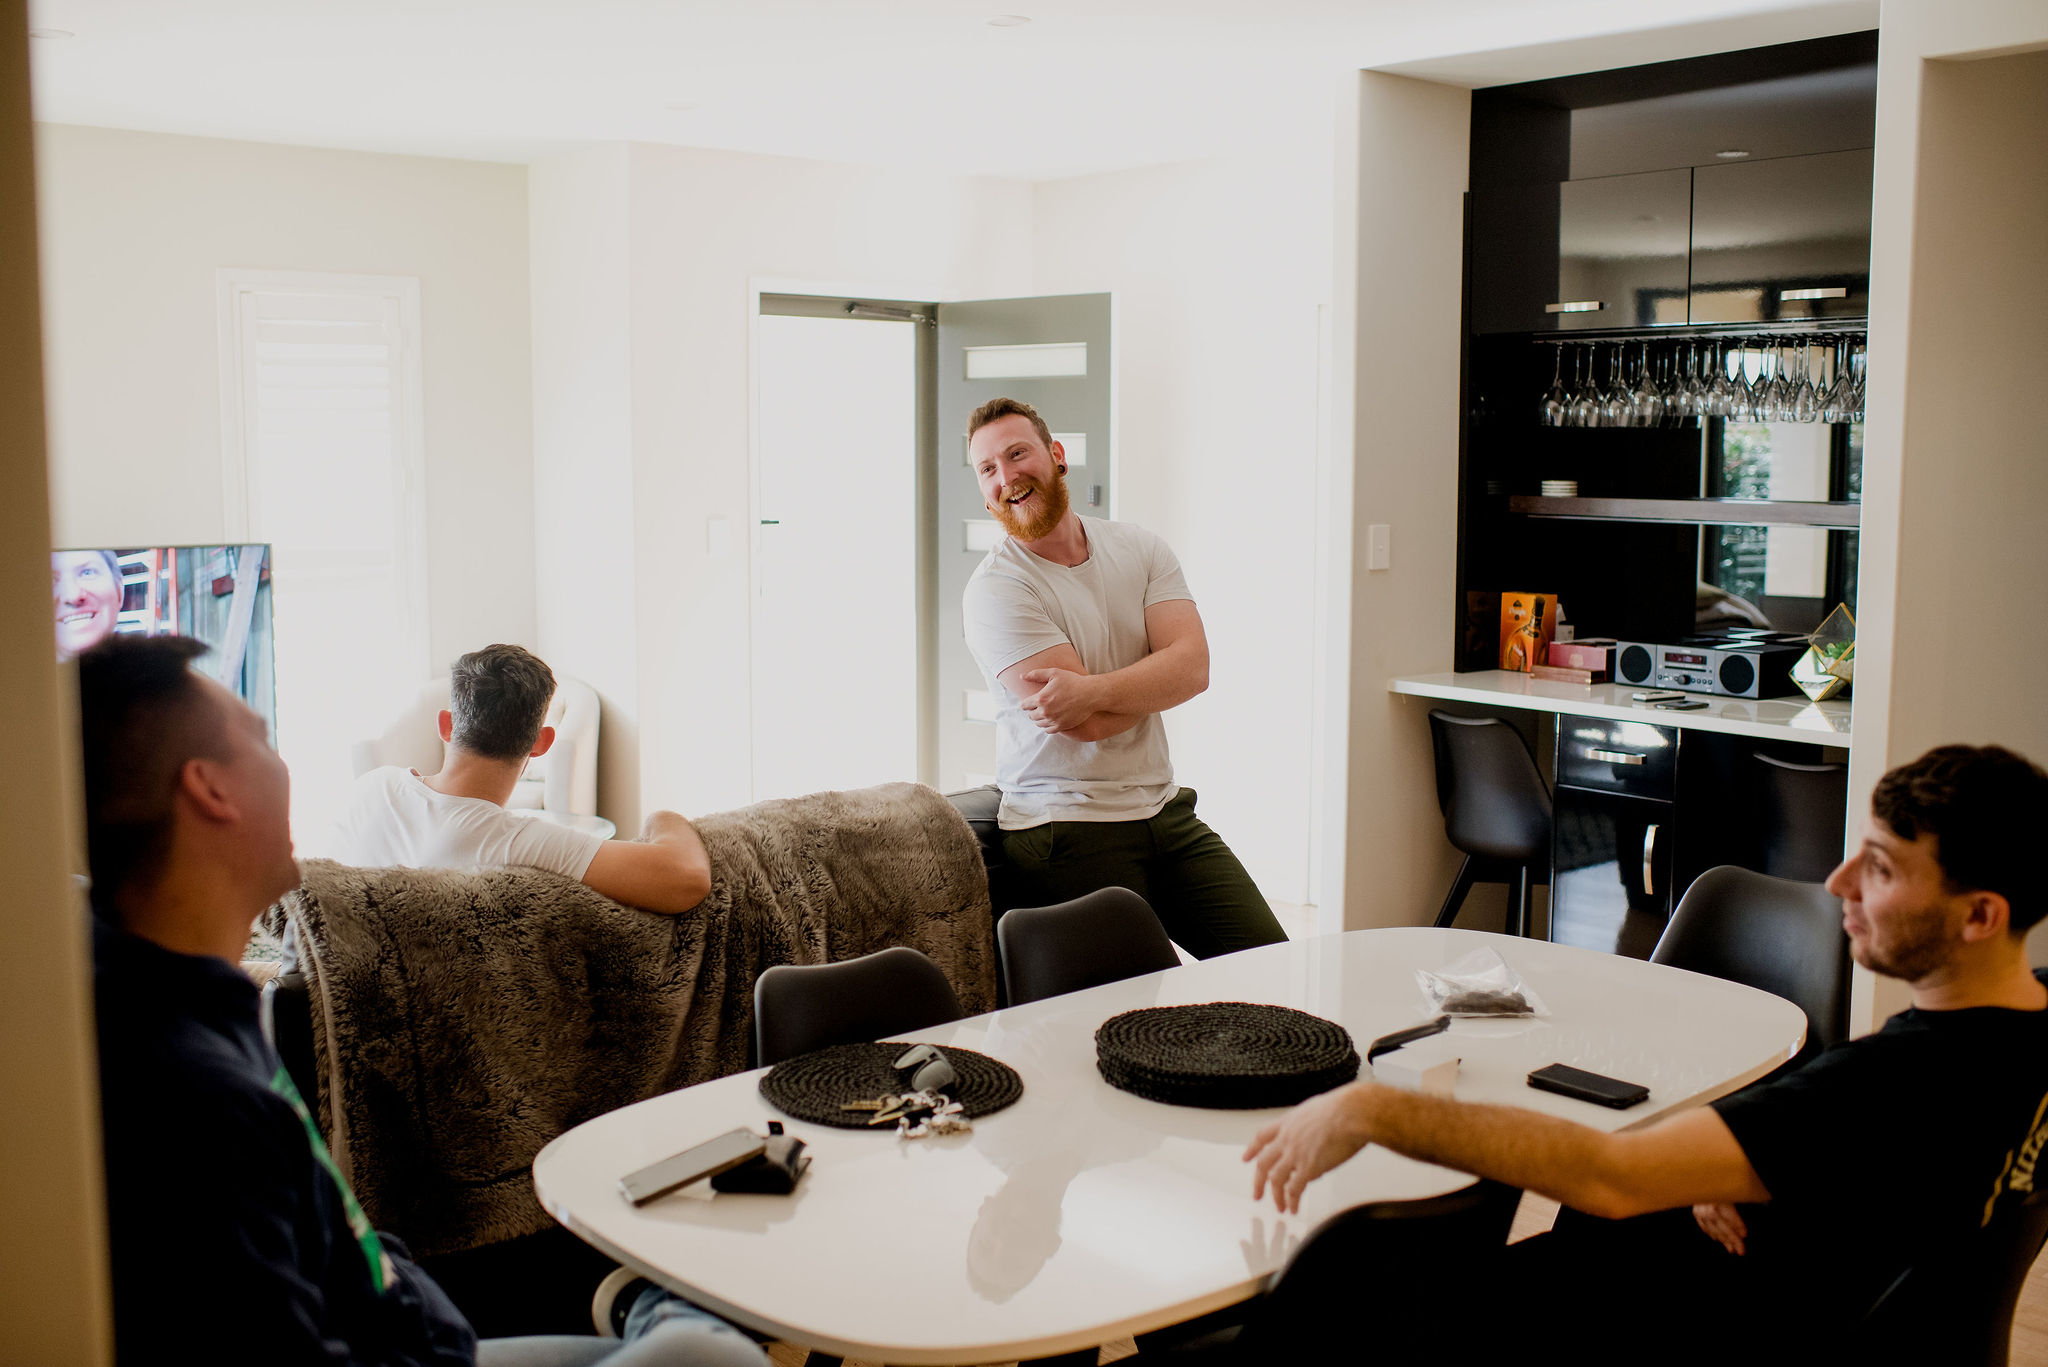 Men laughing together in living room